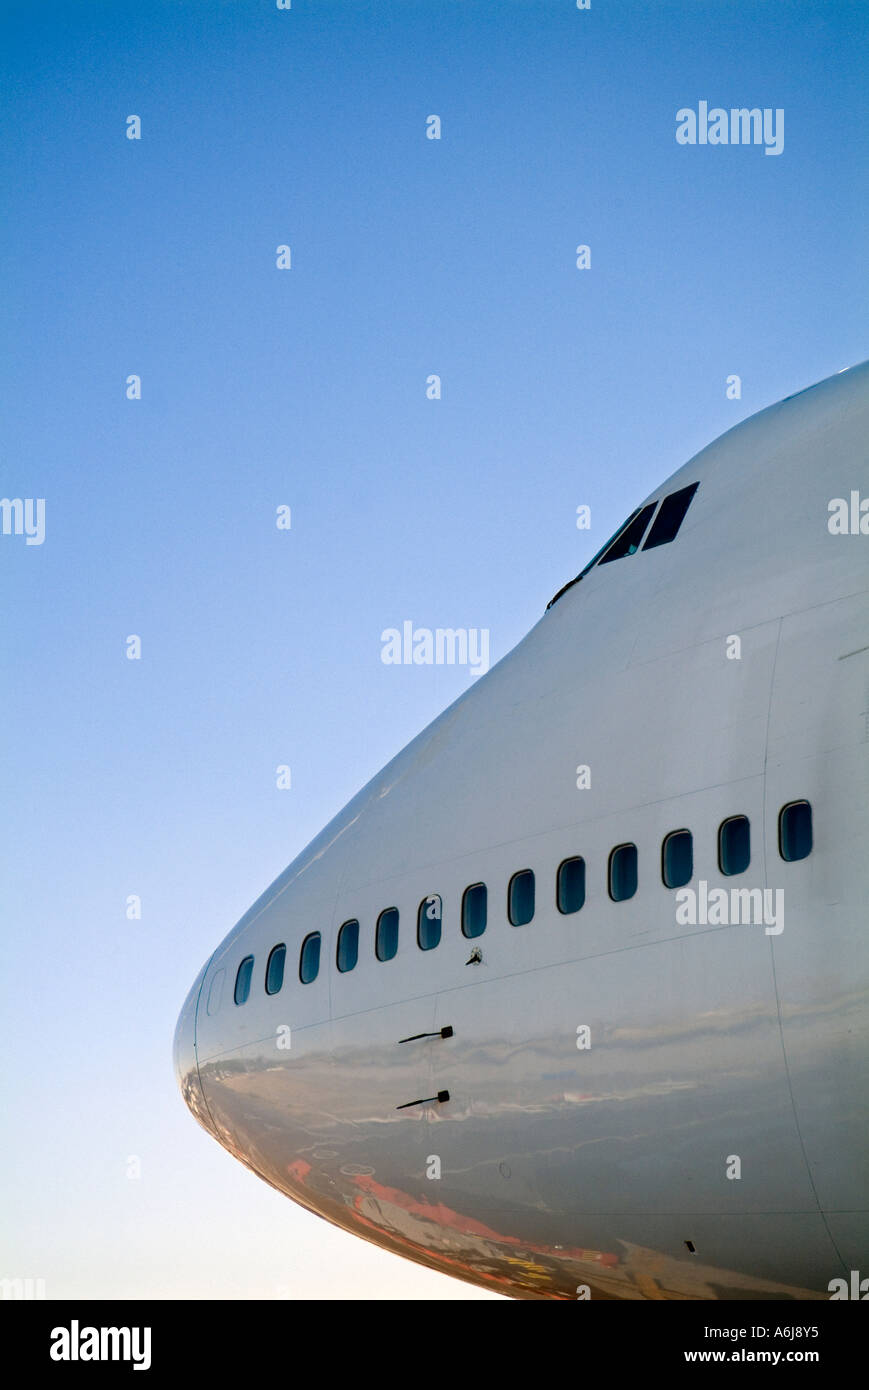 The front of a Boeing 747 aircraft - Stock Image